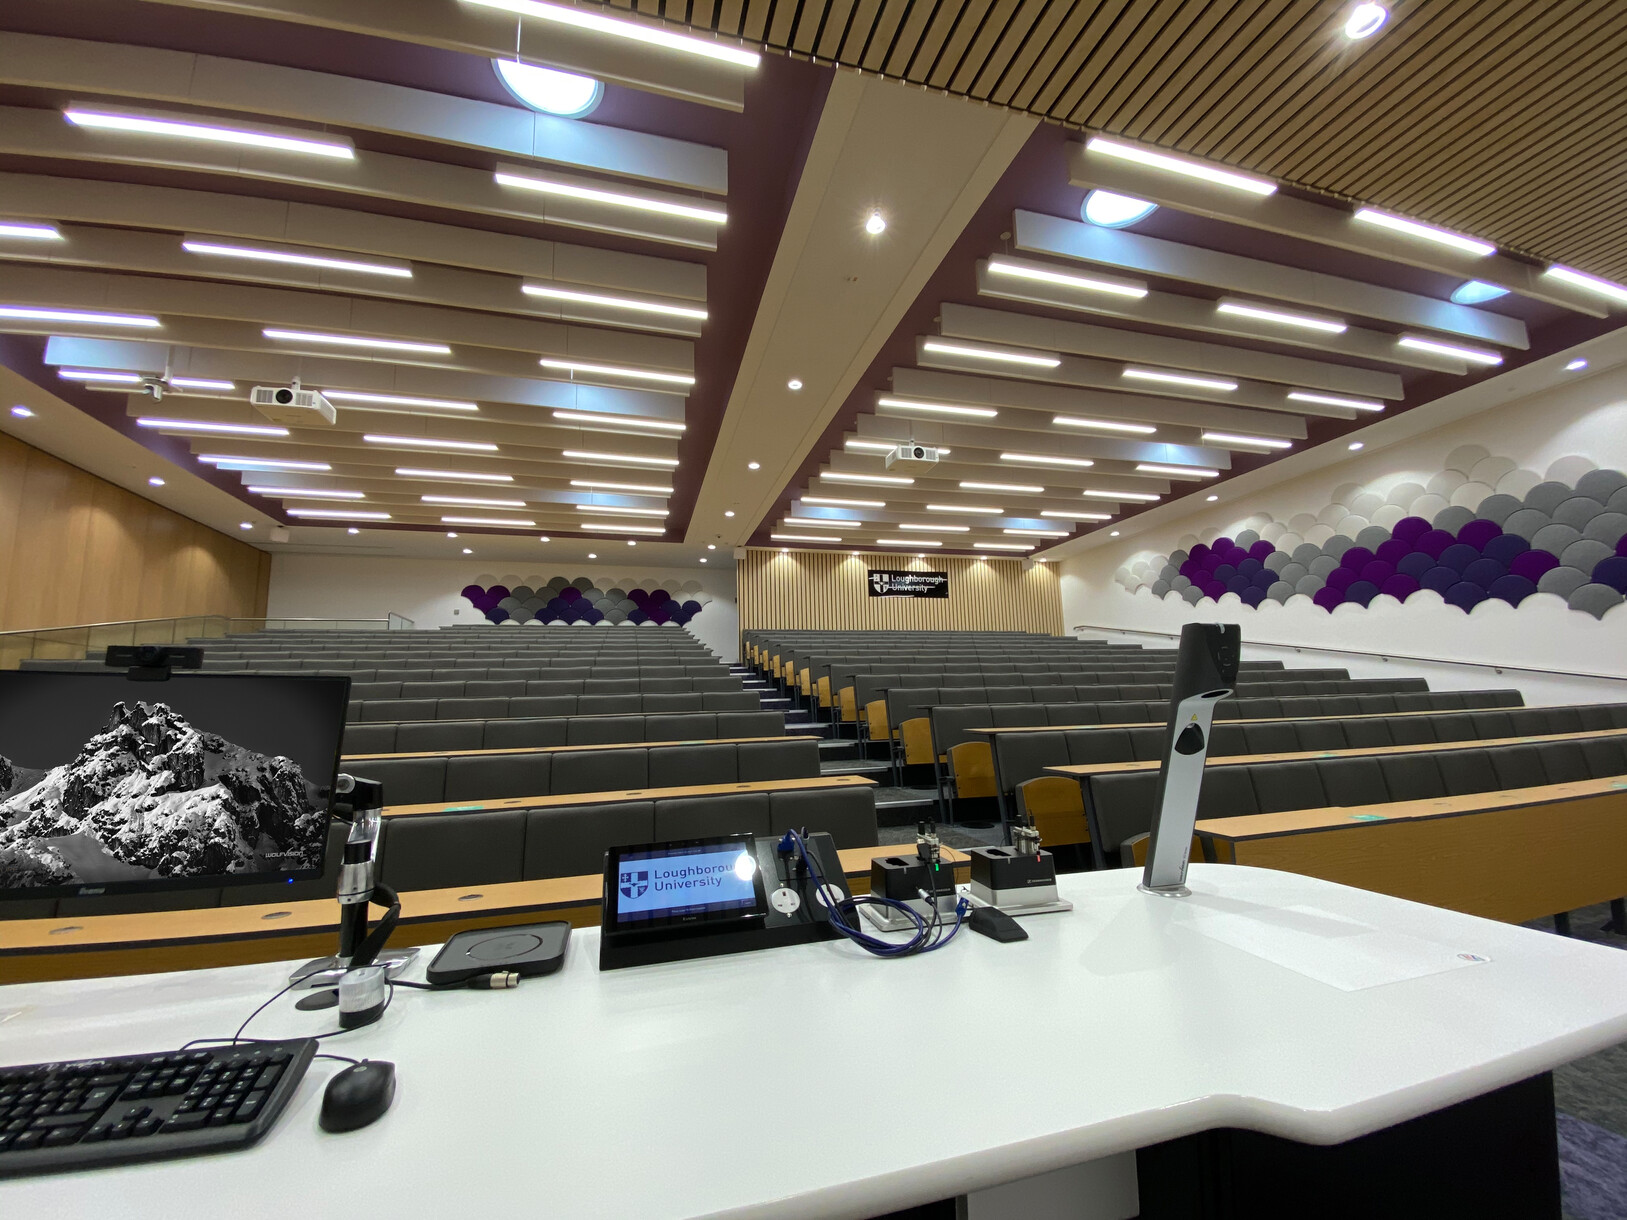 Loughborough University, UK: Live imaging of digital content together with physical objects and handwriting capture for in-person, online and hybrid learning.